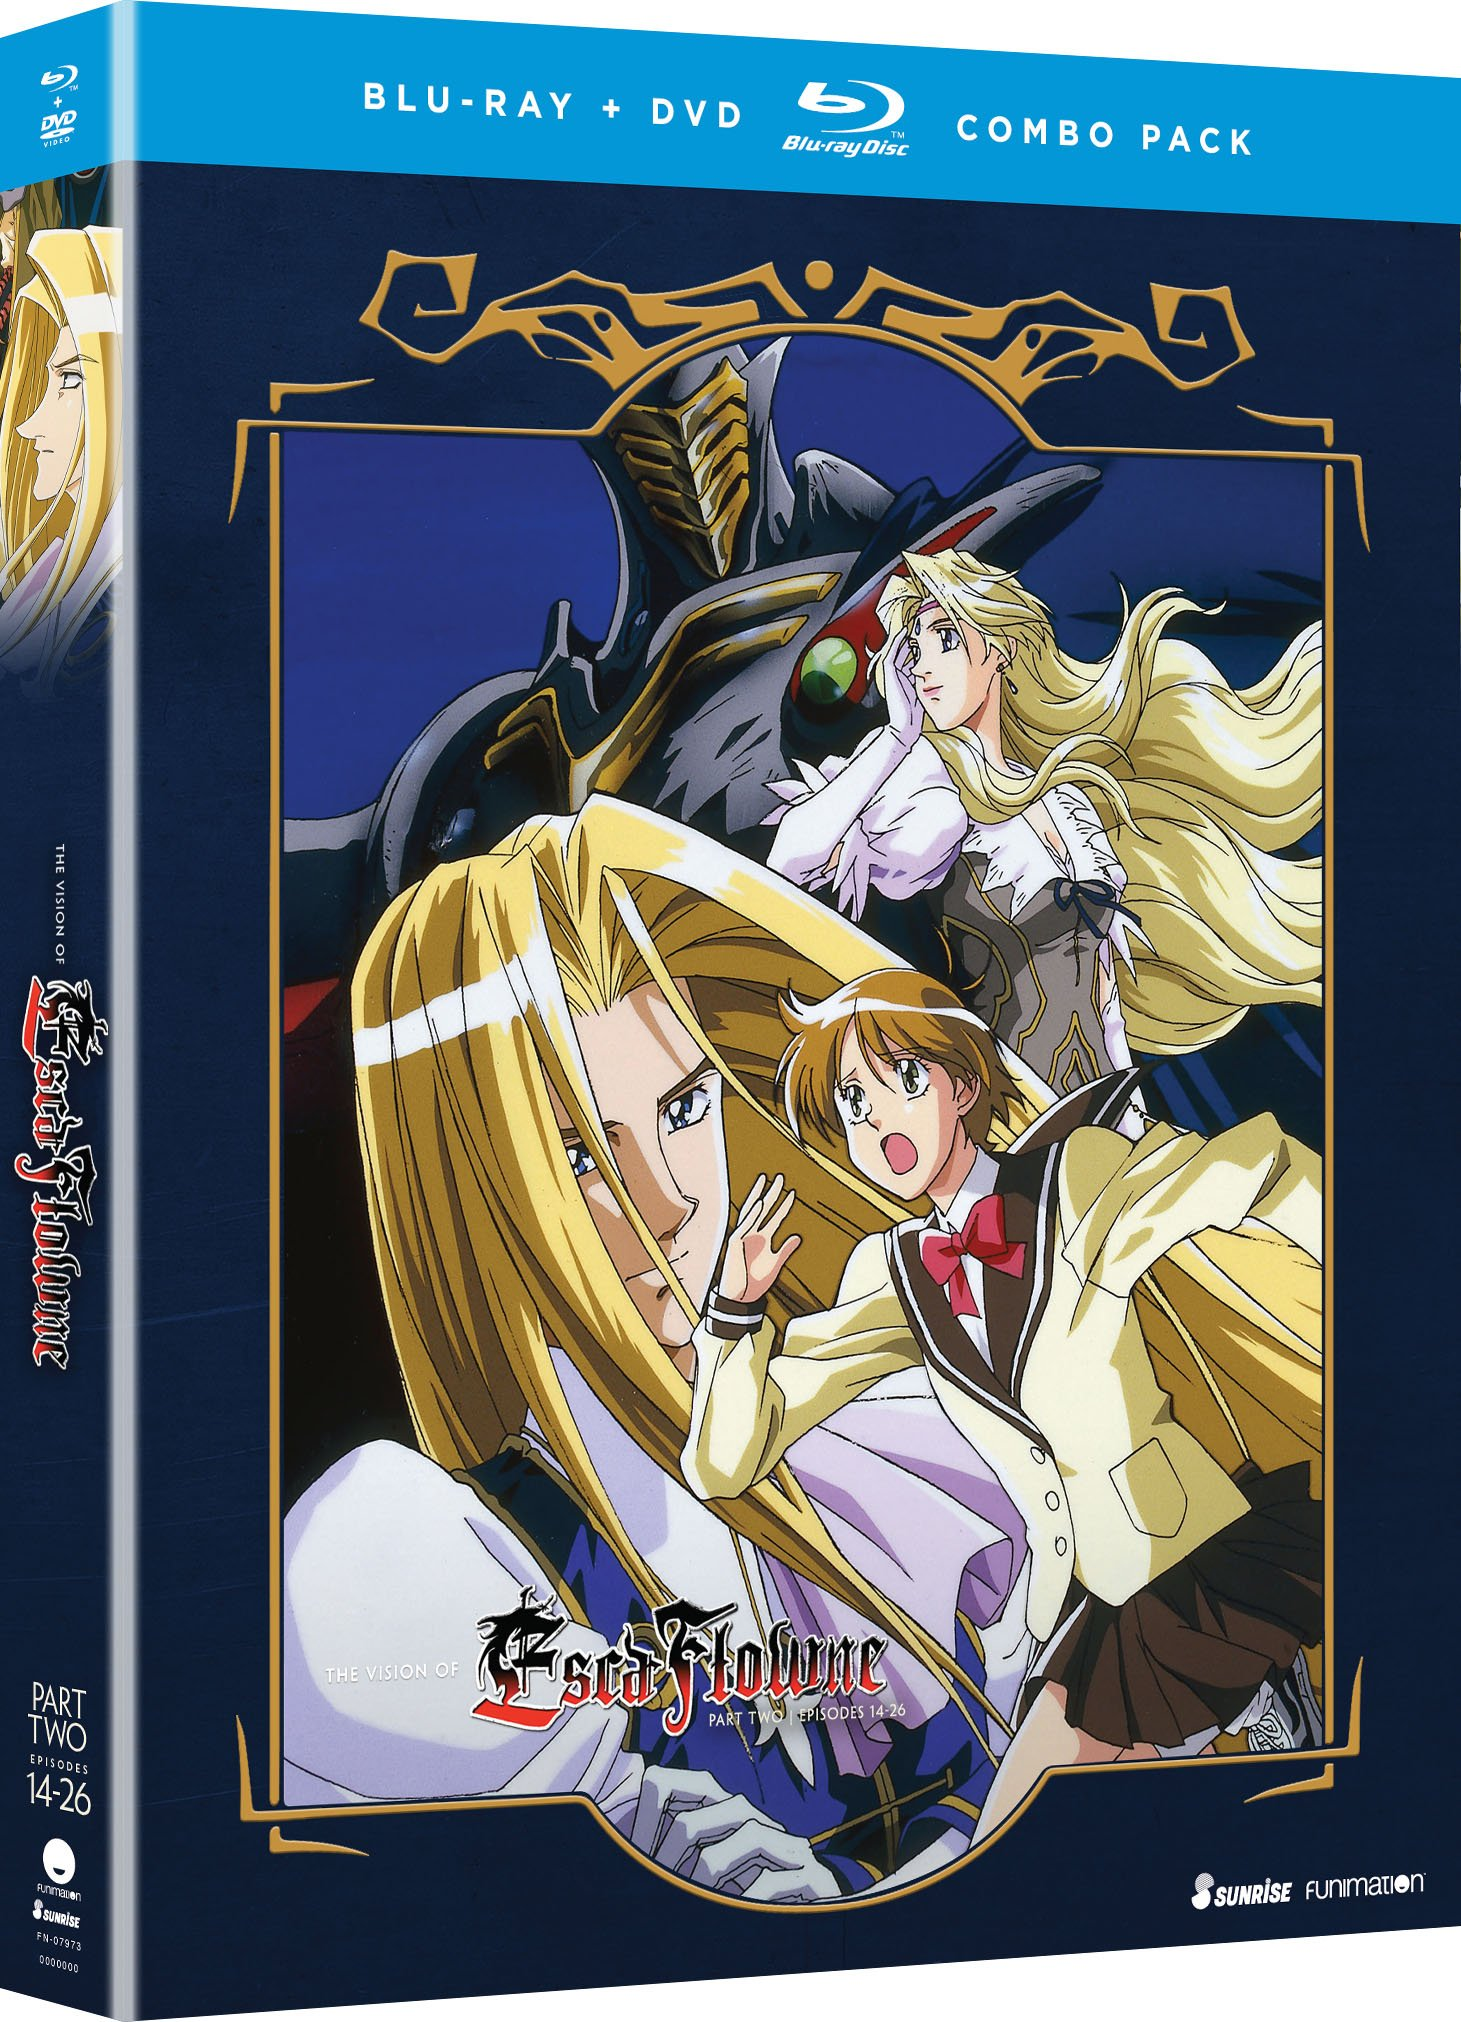 Blu-ray : The Vision Of Escaflowne: Part Two (With DVD, 4 Disc)